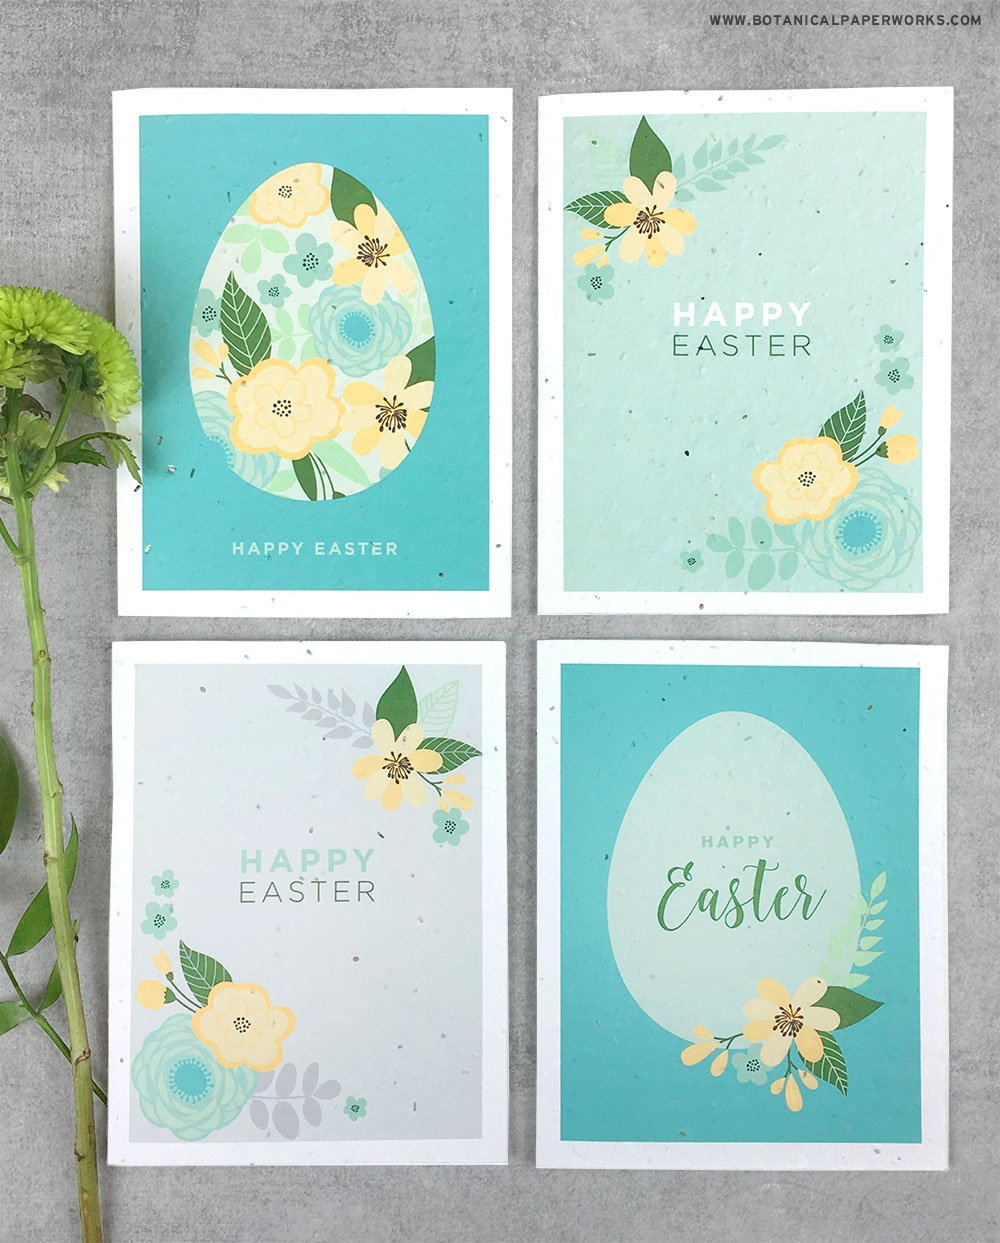 Free Printable} Easter Cards | Blog | Botanical Paperworks - Free Printable Easter Greeting Cards